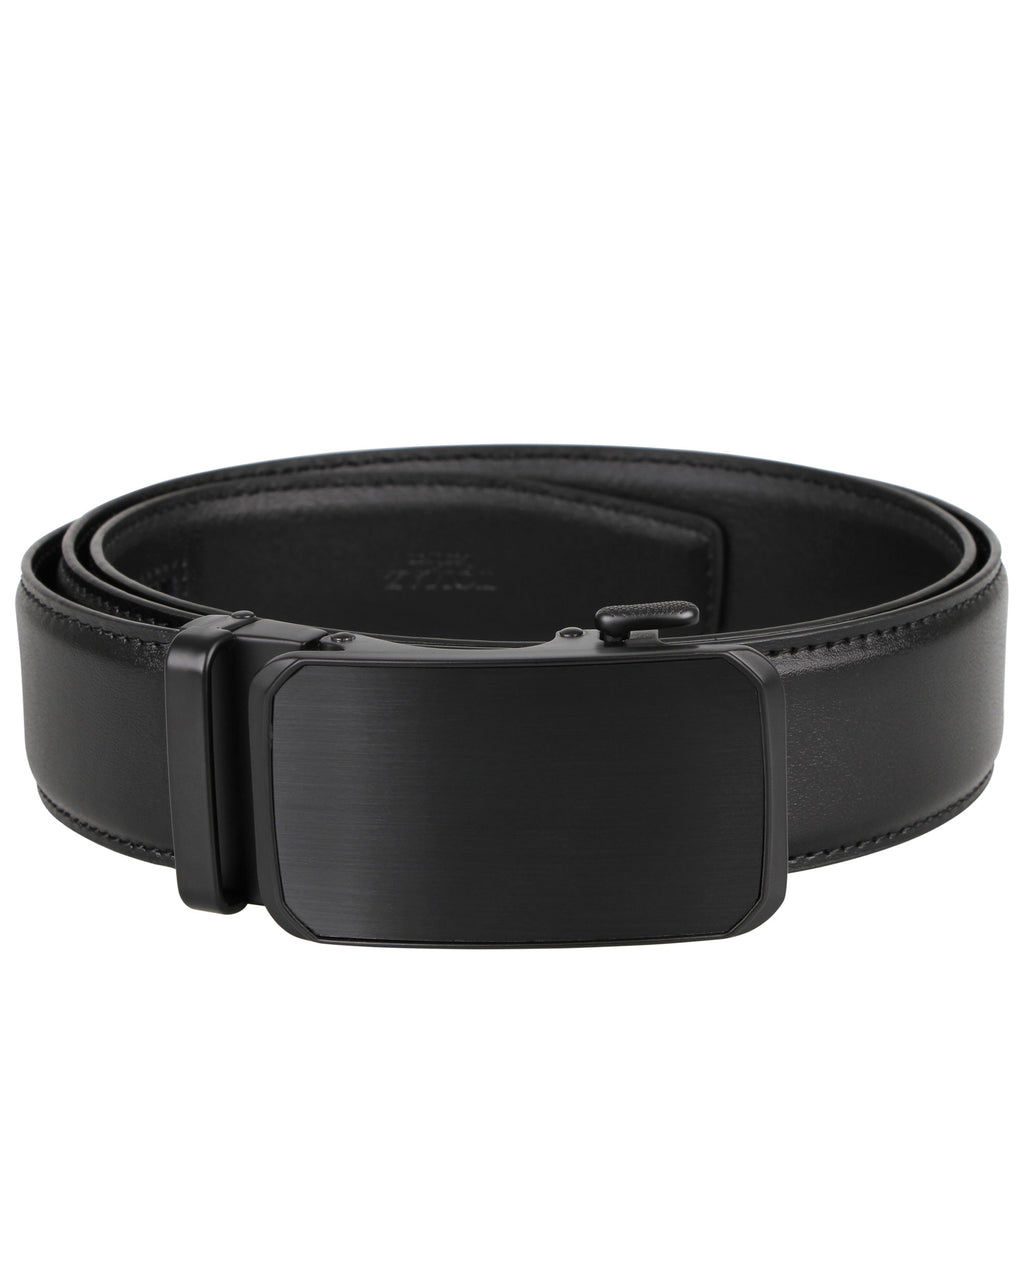 Tomaz Automatic Belt NT158 (Black)